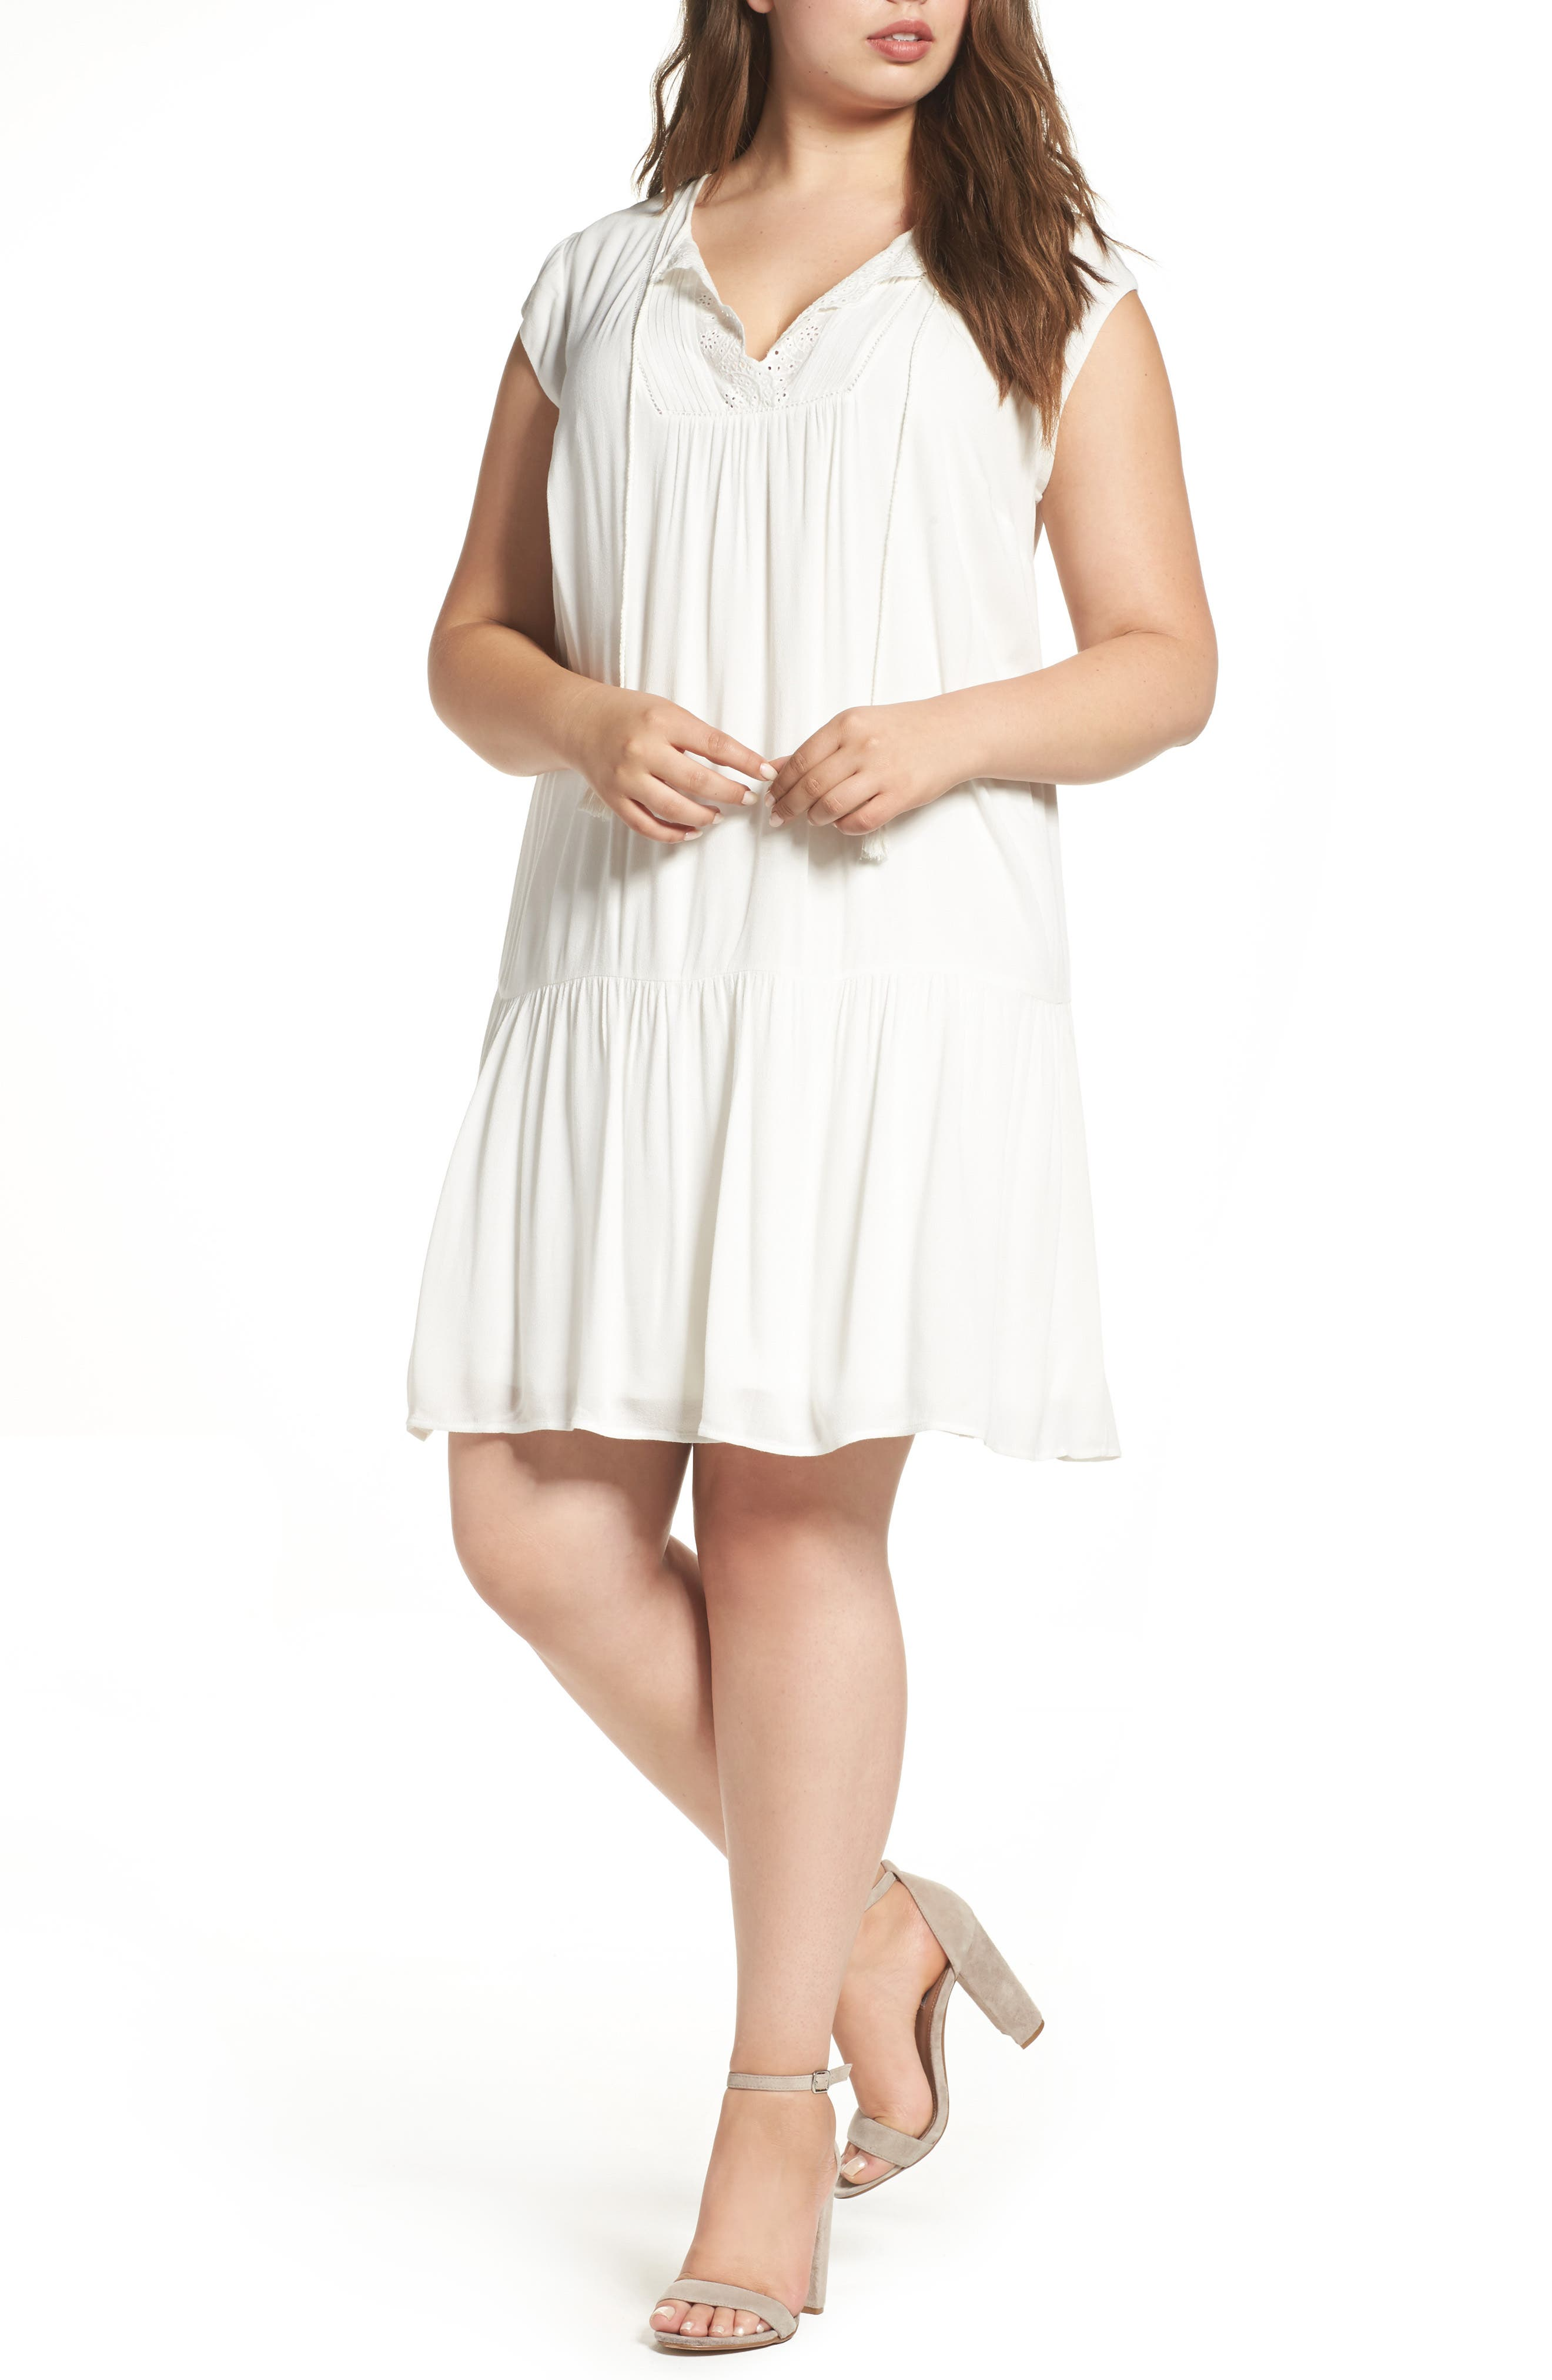 Alternate Image 1 Selected - Daniel Rainn Crochet Trim Dress (Plus Size)